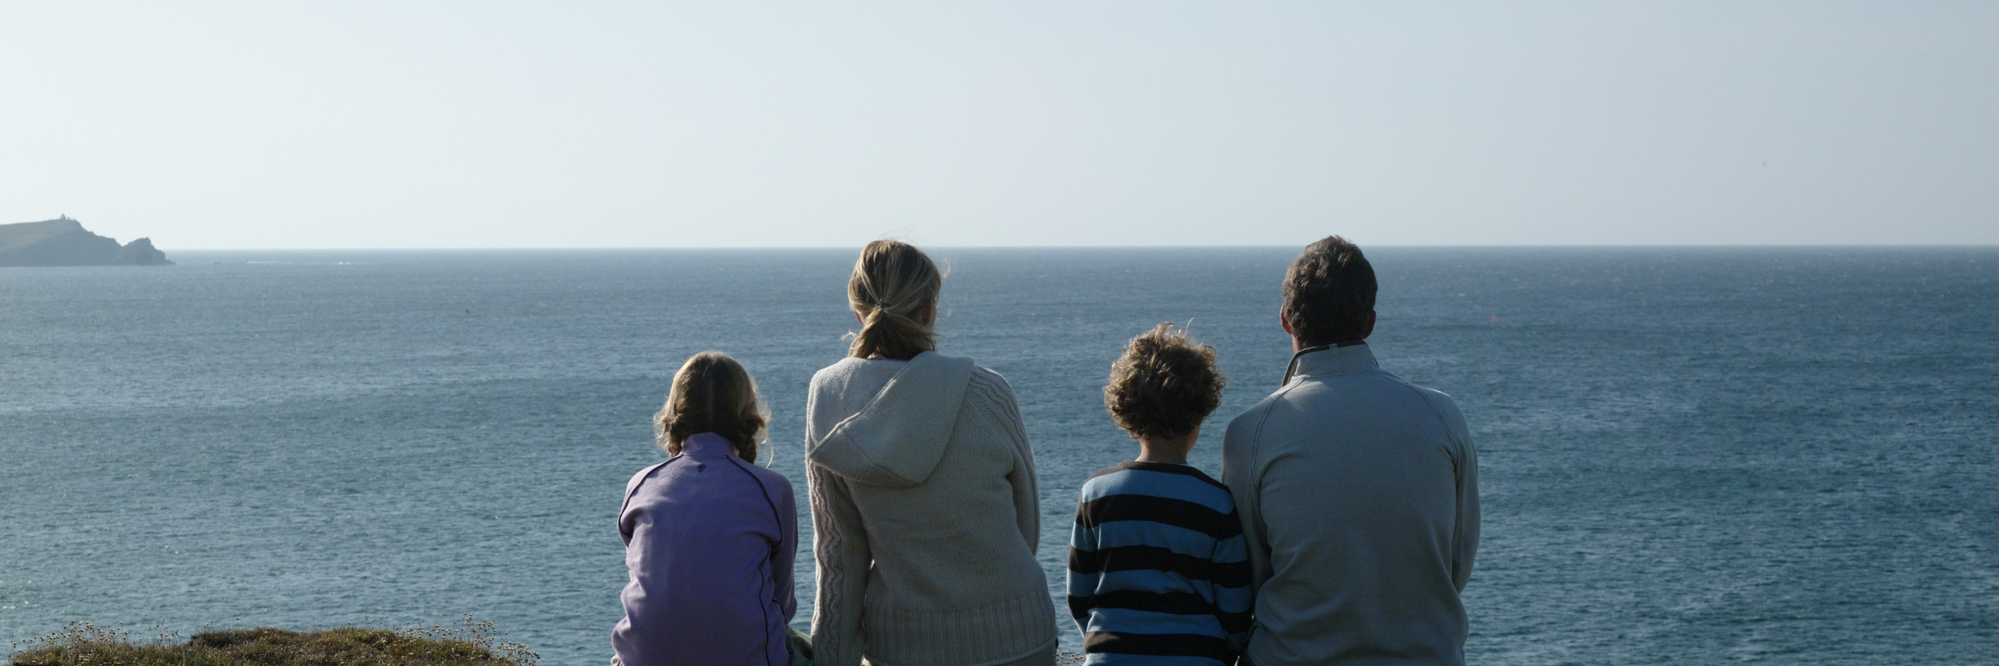 Family looking at the ocean.